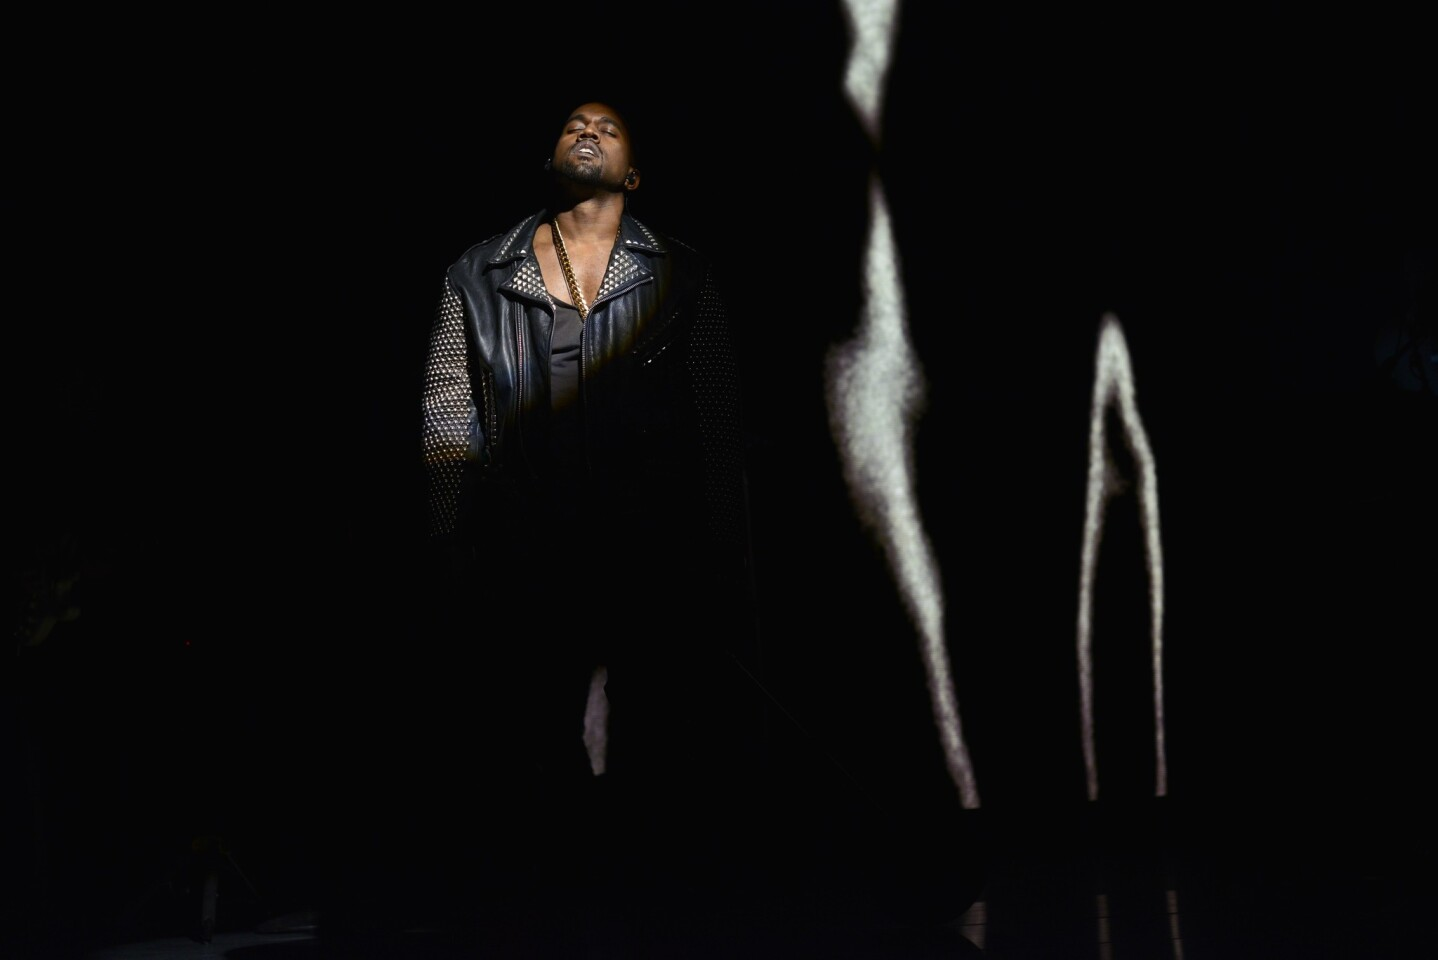 """A lightning rod for controversy throughout 2013, Kanye West was never more electric than his appearance on, of all places, """"Saturday Night Live."""" Dwarfed under stark projections of snarling hounds and wall-sized price tags, West howled through the frenzied drive of """"Black Skinhead"""" and compressed himself into a slow, furious burn for """"New Slaves."""" There was no more hype, no more """"Kimye,"""" and all that remained was a barbed provocation from one voice that swerved hip-hop into abrasive punk rock. Kanye wasn't just loud, maybe he really was saying something big enough to broadcast on buildings. Then, well, the album came out. — Chris Barton"""